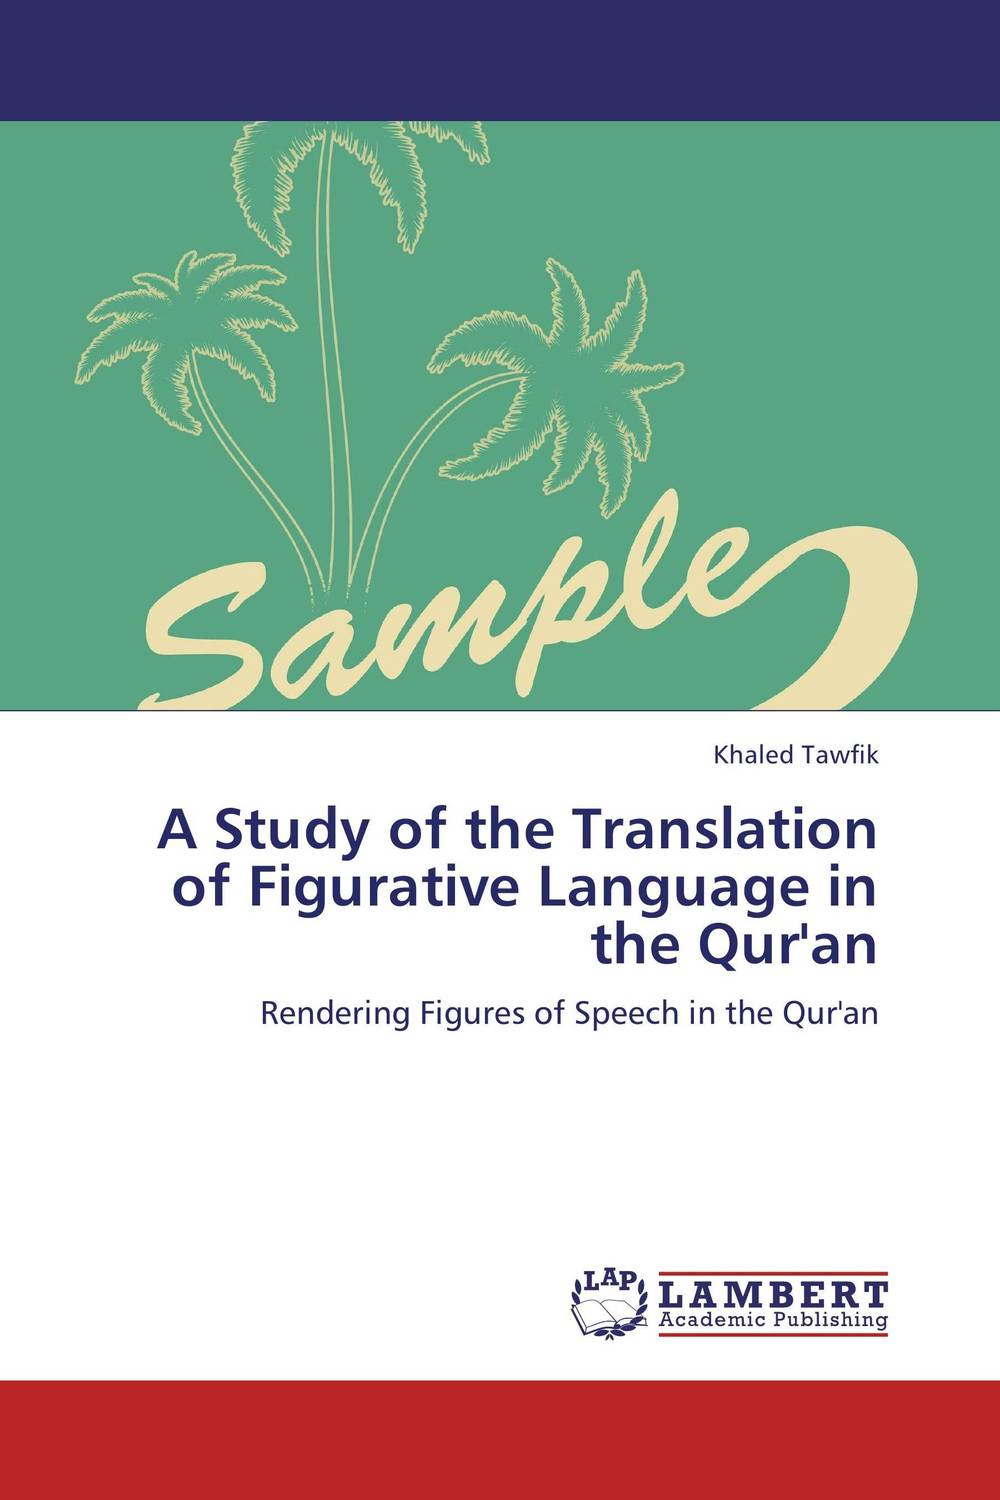 A Study of the Translation of Figurative Language in the Qur'an the translation of figurative language